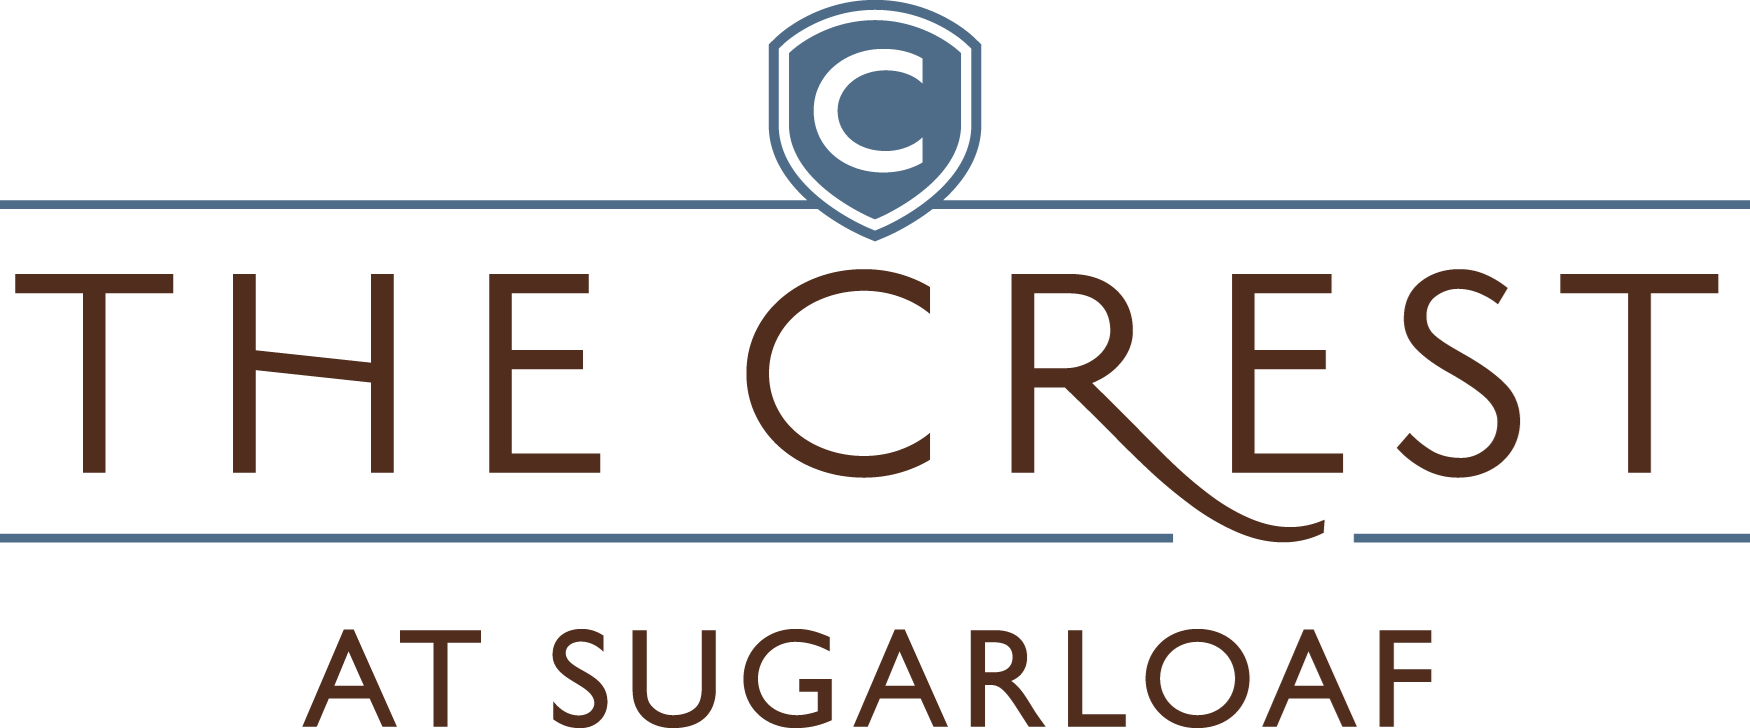 The Crest at Sugarloaf Property Logo 52